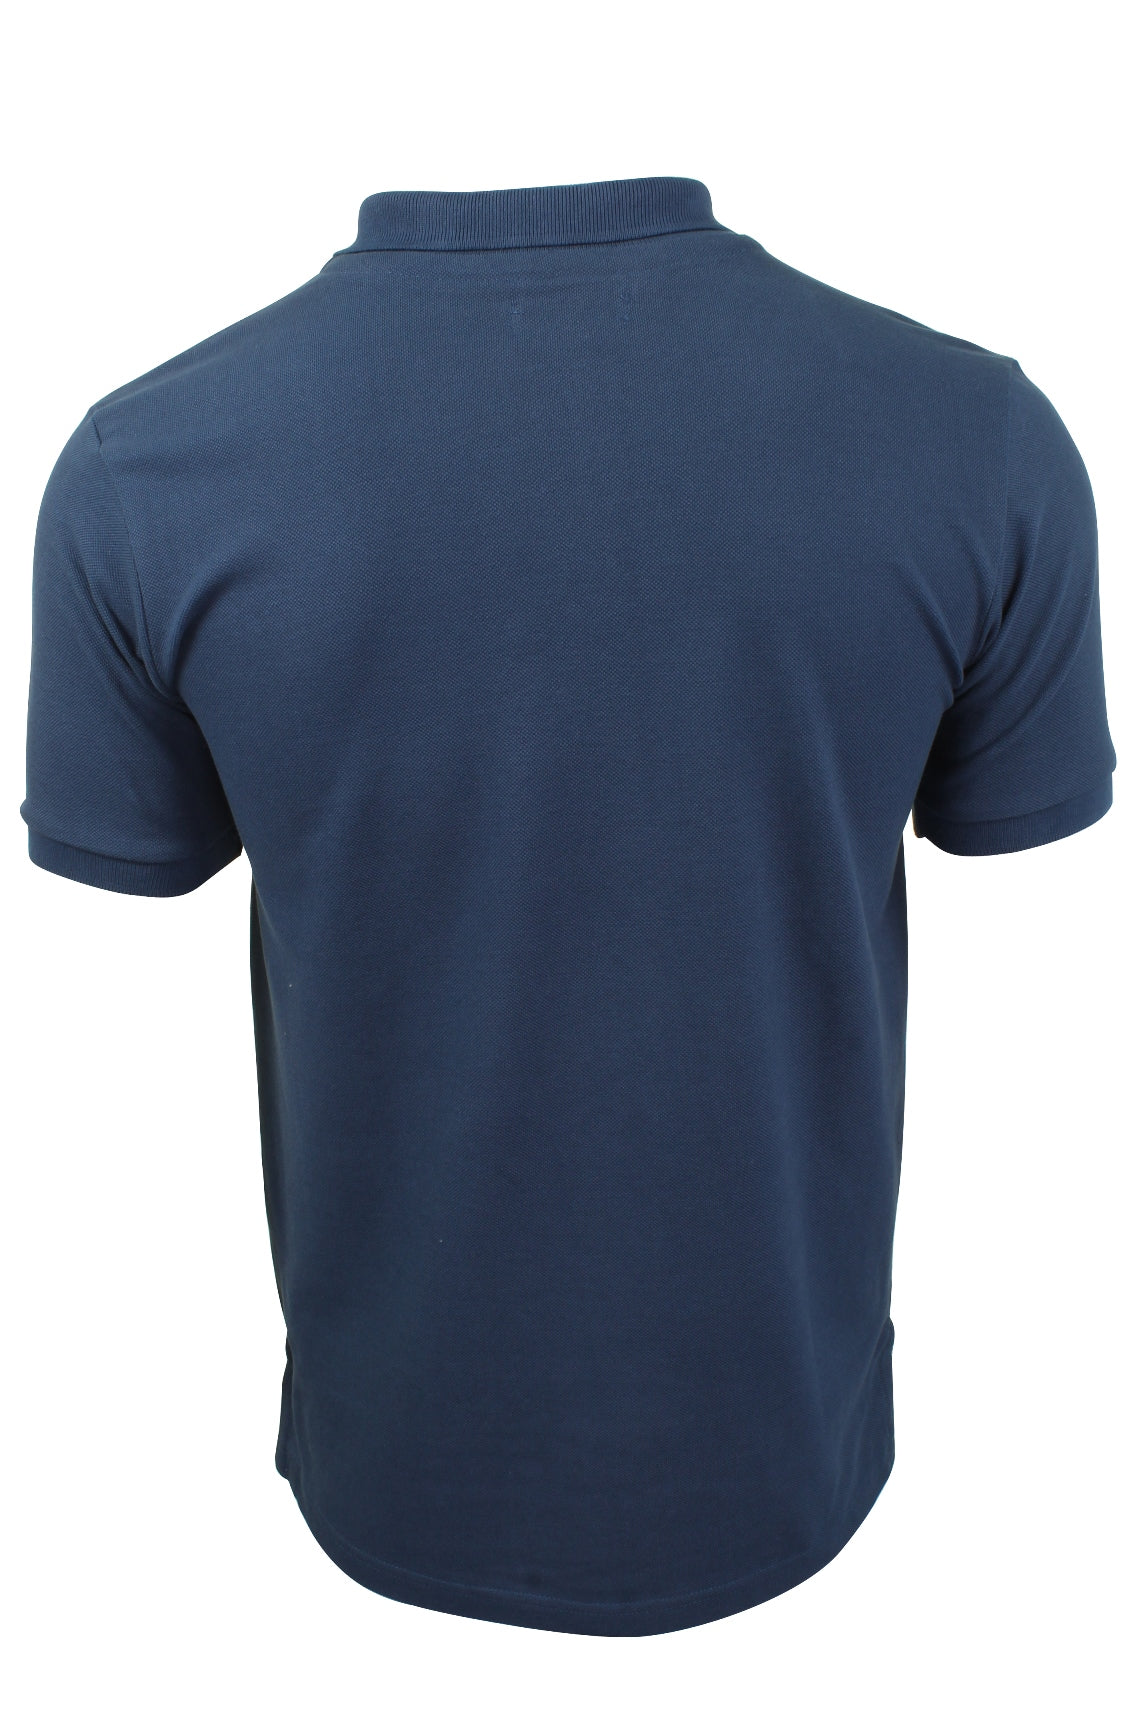 Mens Pique Polo T-Shirt by Xact Short Sleeved Ruched Placket Cotton Rich_03_Xp1002_Denim Blue